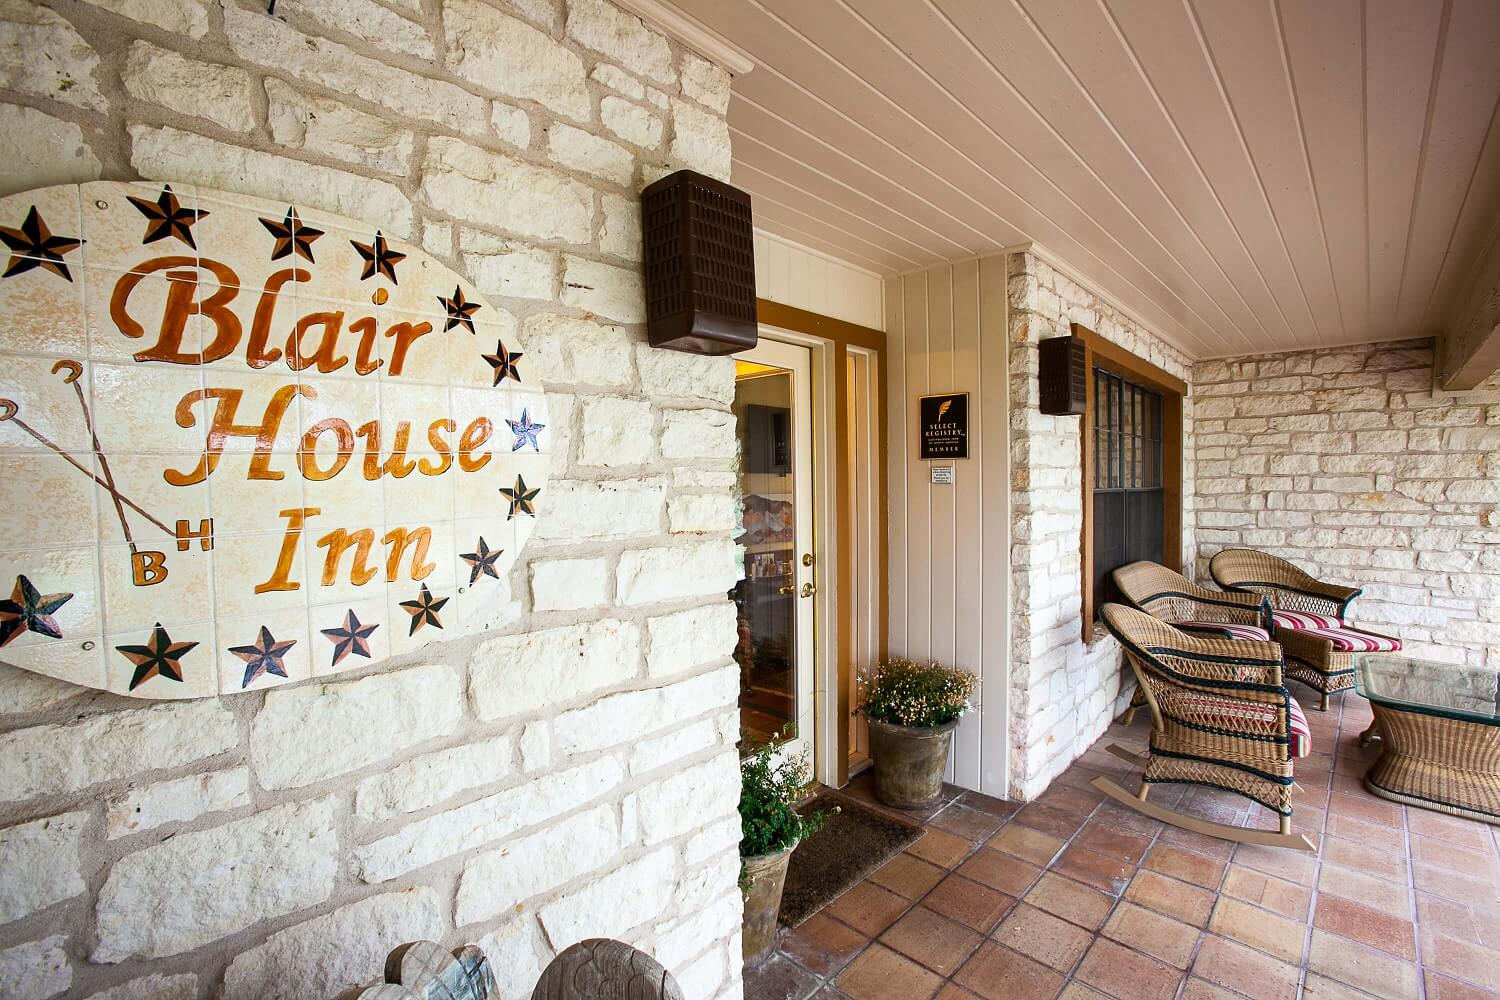 Entrance of Blair House Inn